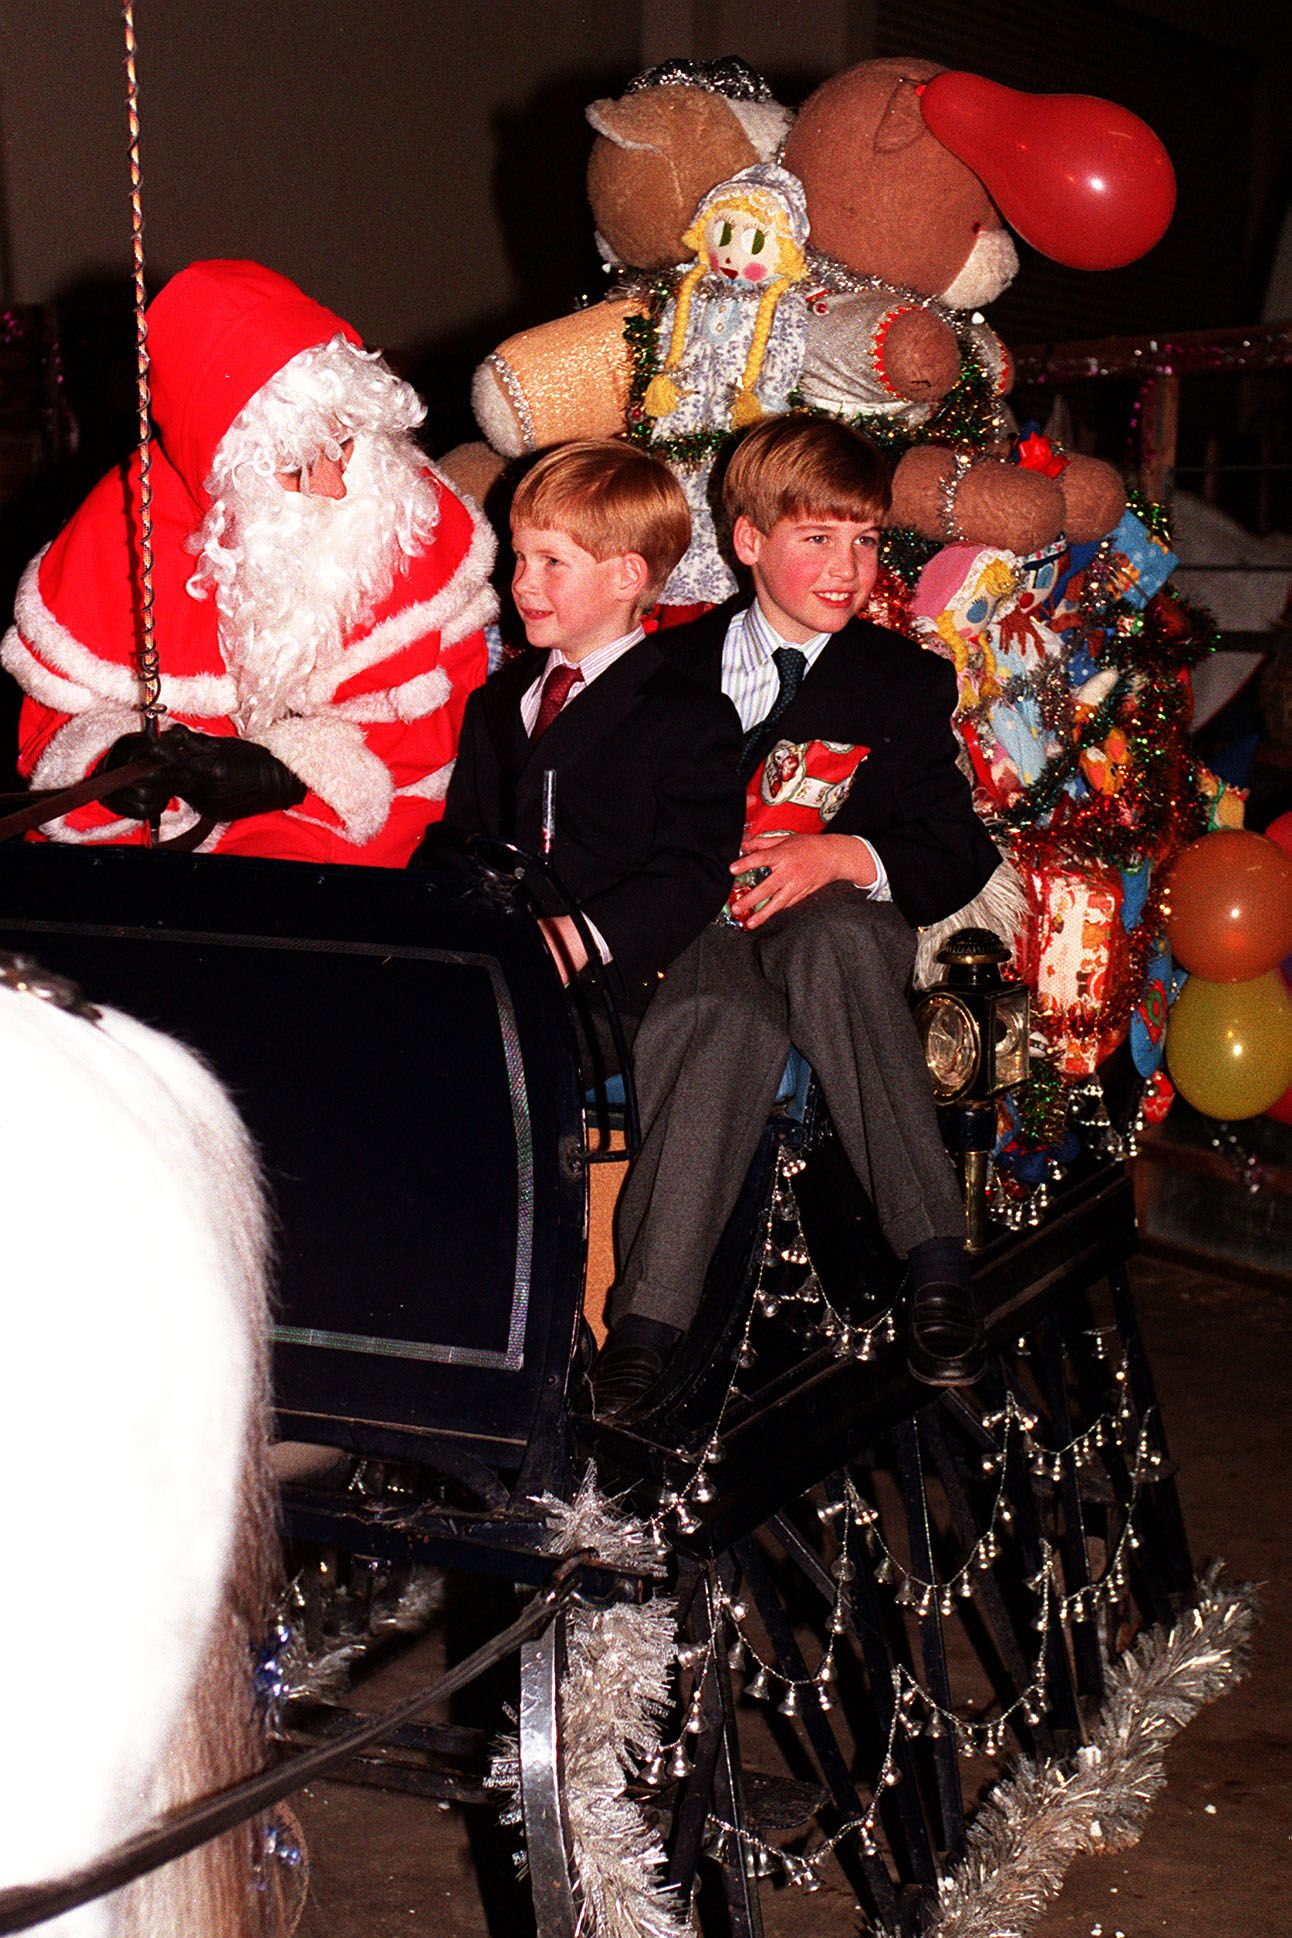 PRINCE WILLIAM MEETS FATHER CHRISTMAS